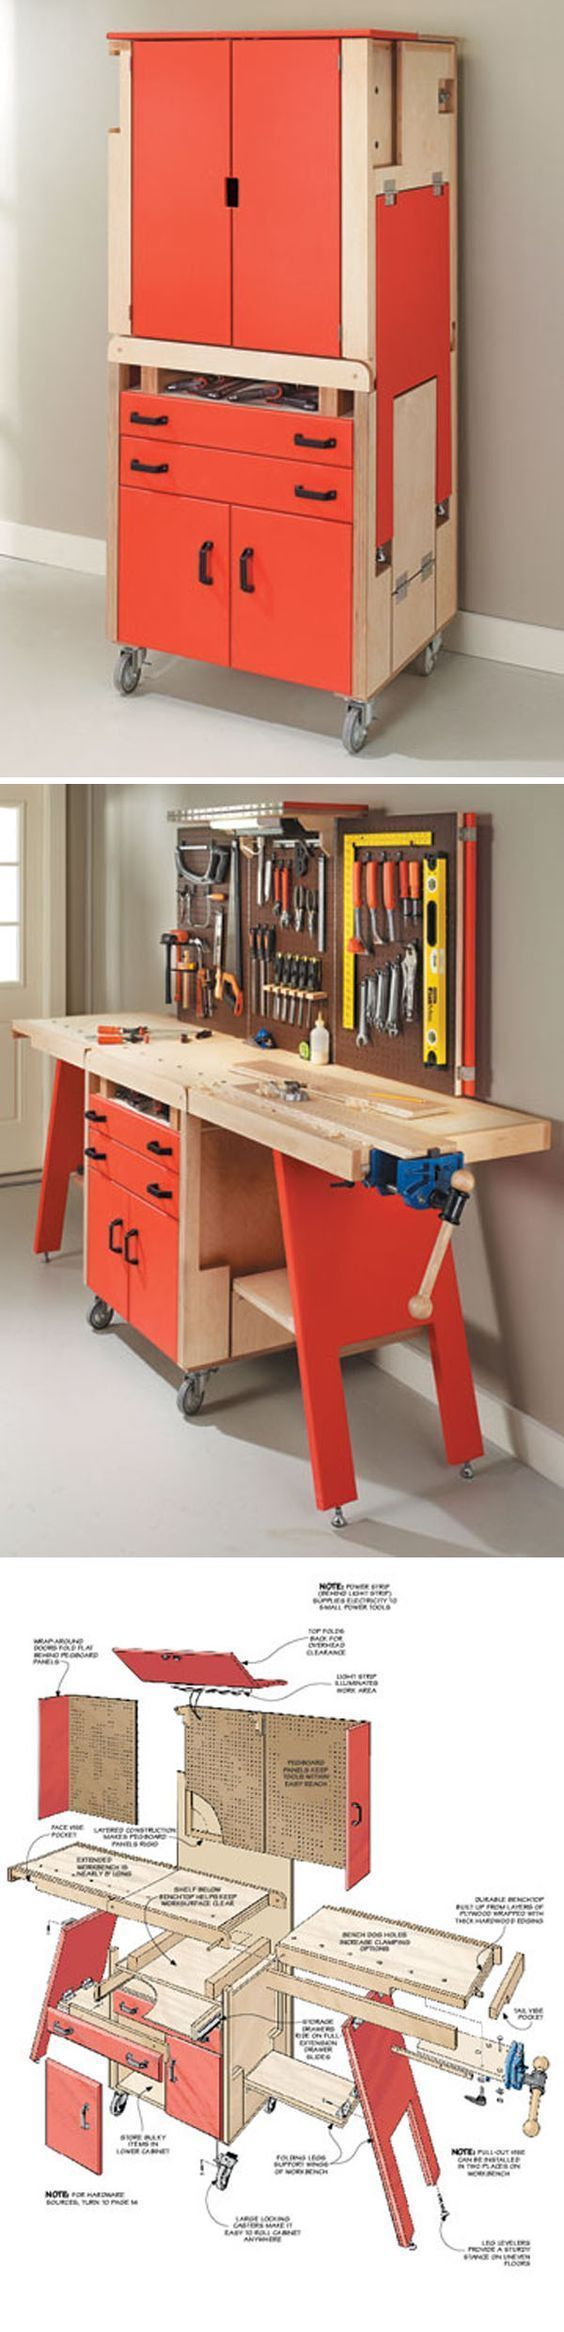 Deliver a little loftiness to your residing property along with motivational carpentry tips and also projects shelf made by handymans around the globe.